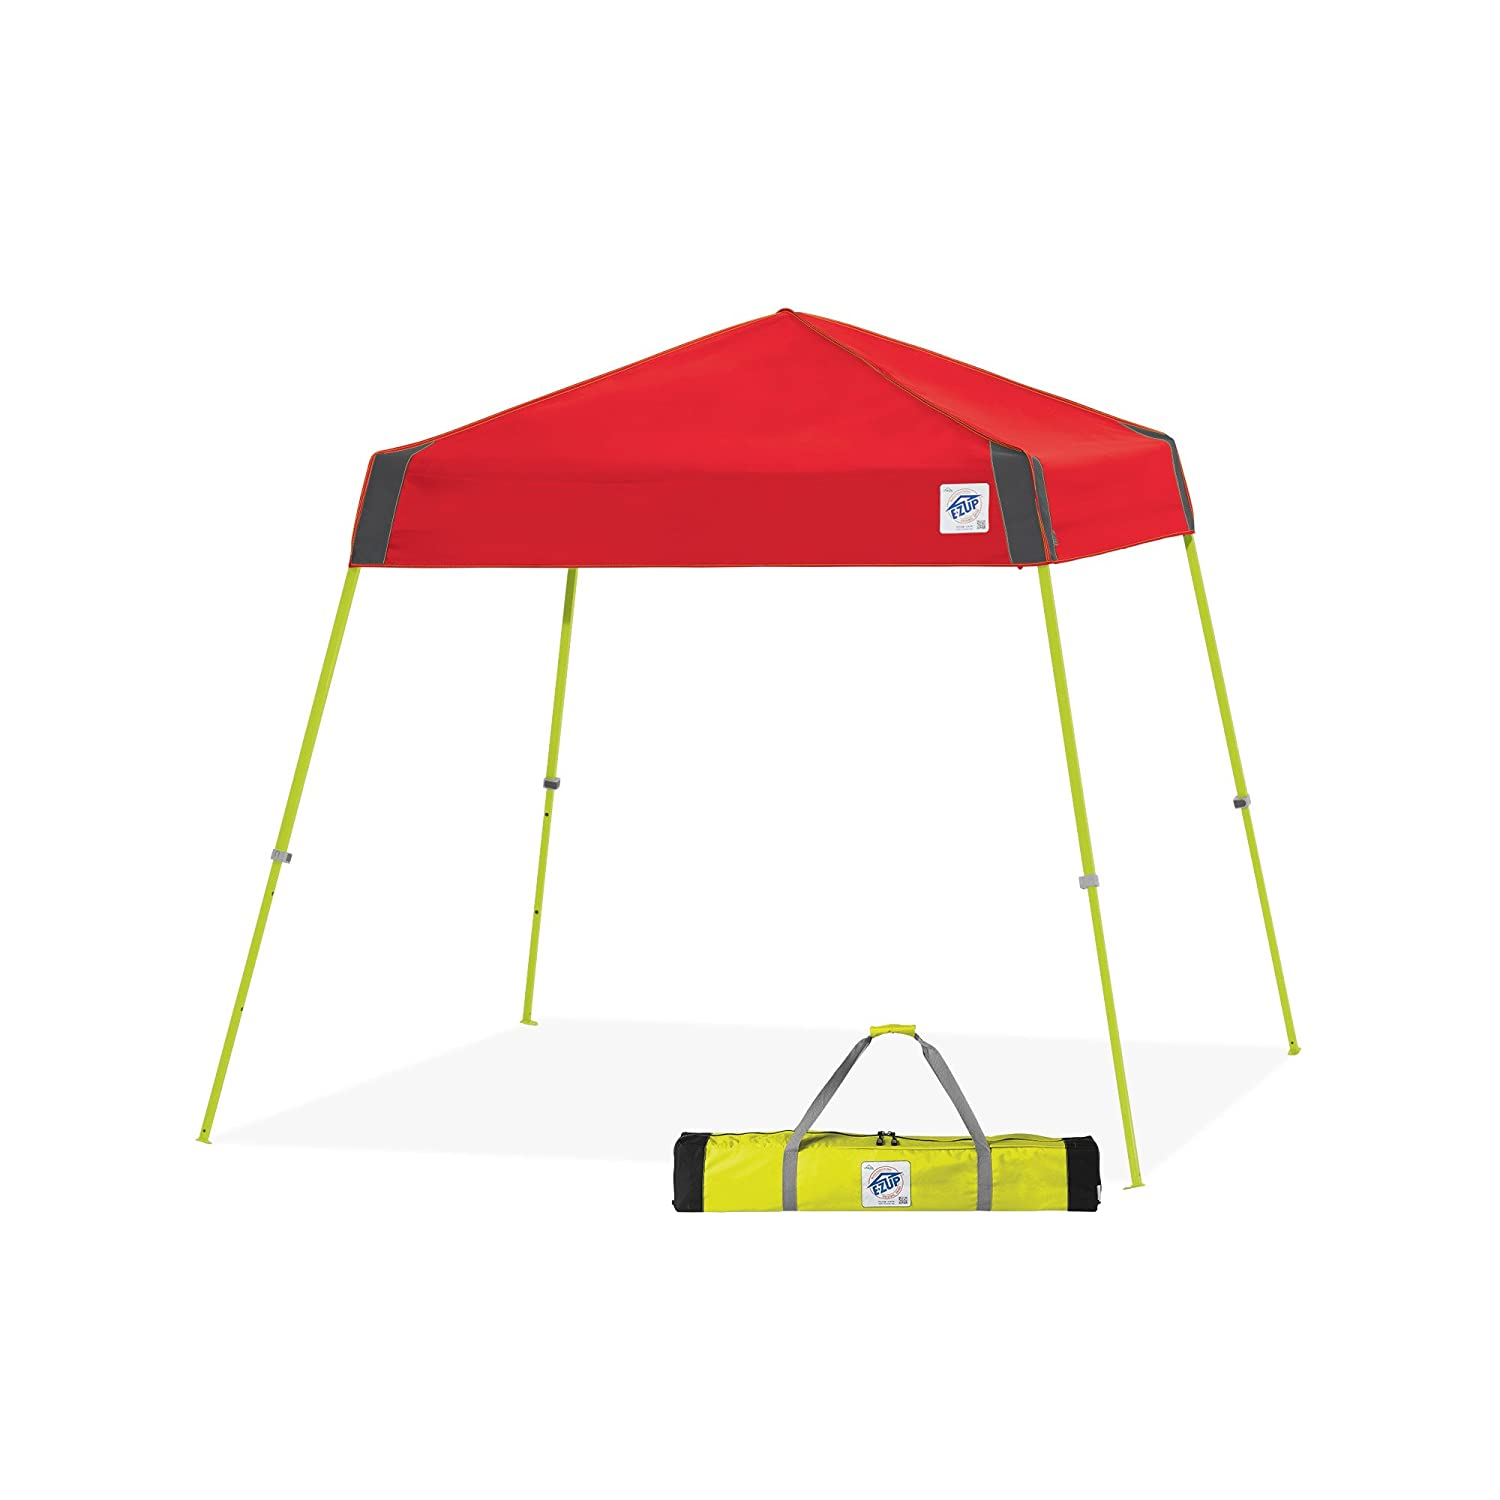 E-Z UP Vista Sport Instant Shelter Canopy 8 x 8-Feet Limeade Amazon.ca Patio Lawn u0026 Garden  sc 1 st  Amazon.ca & E-Z UP Vista Sport Instant Shelter Canopy 8 x 8-Feet Limeade ...